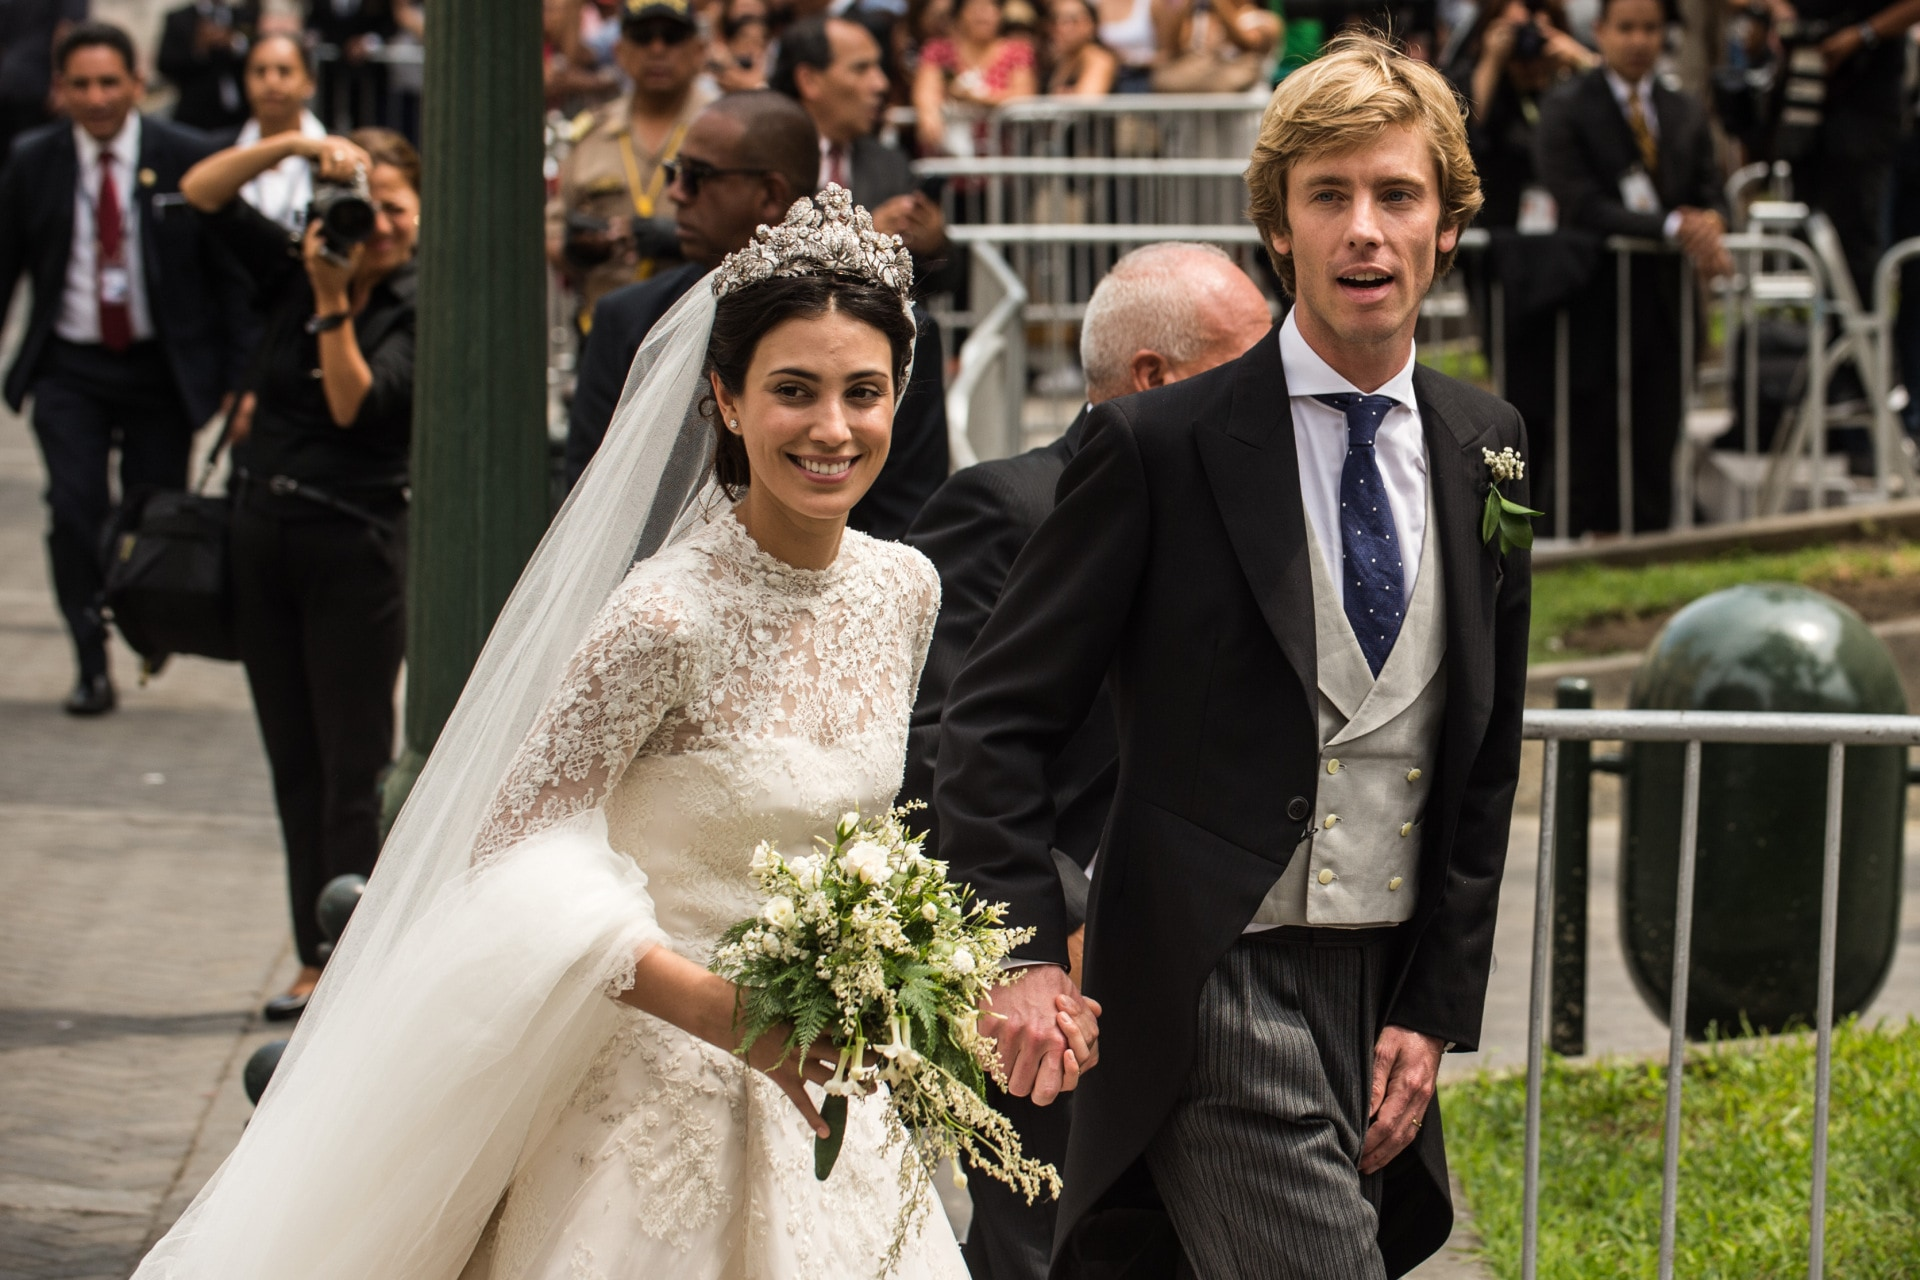 Prince Christian of Hanover marries Alessandra de Osma in Peru